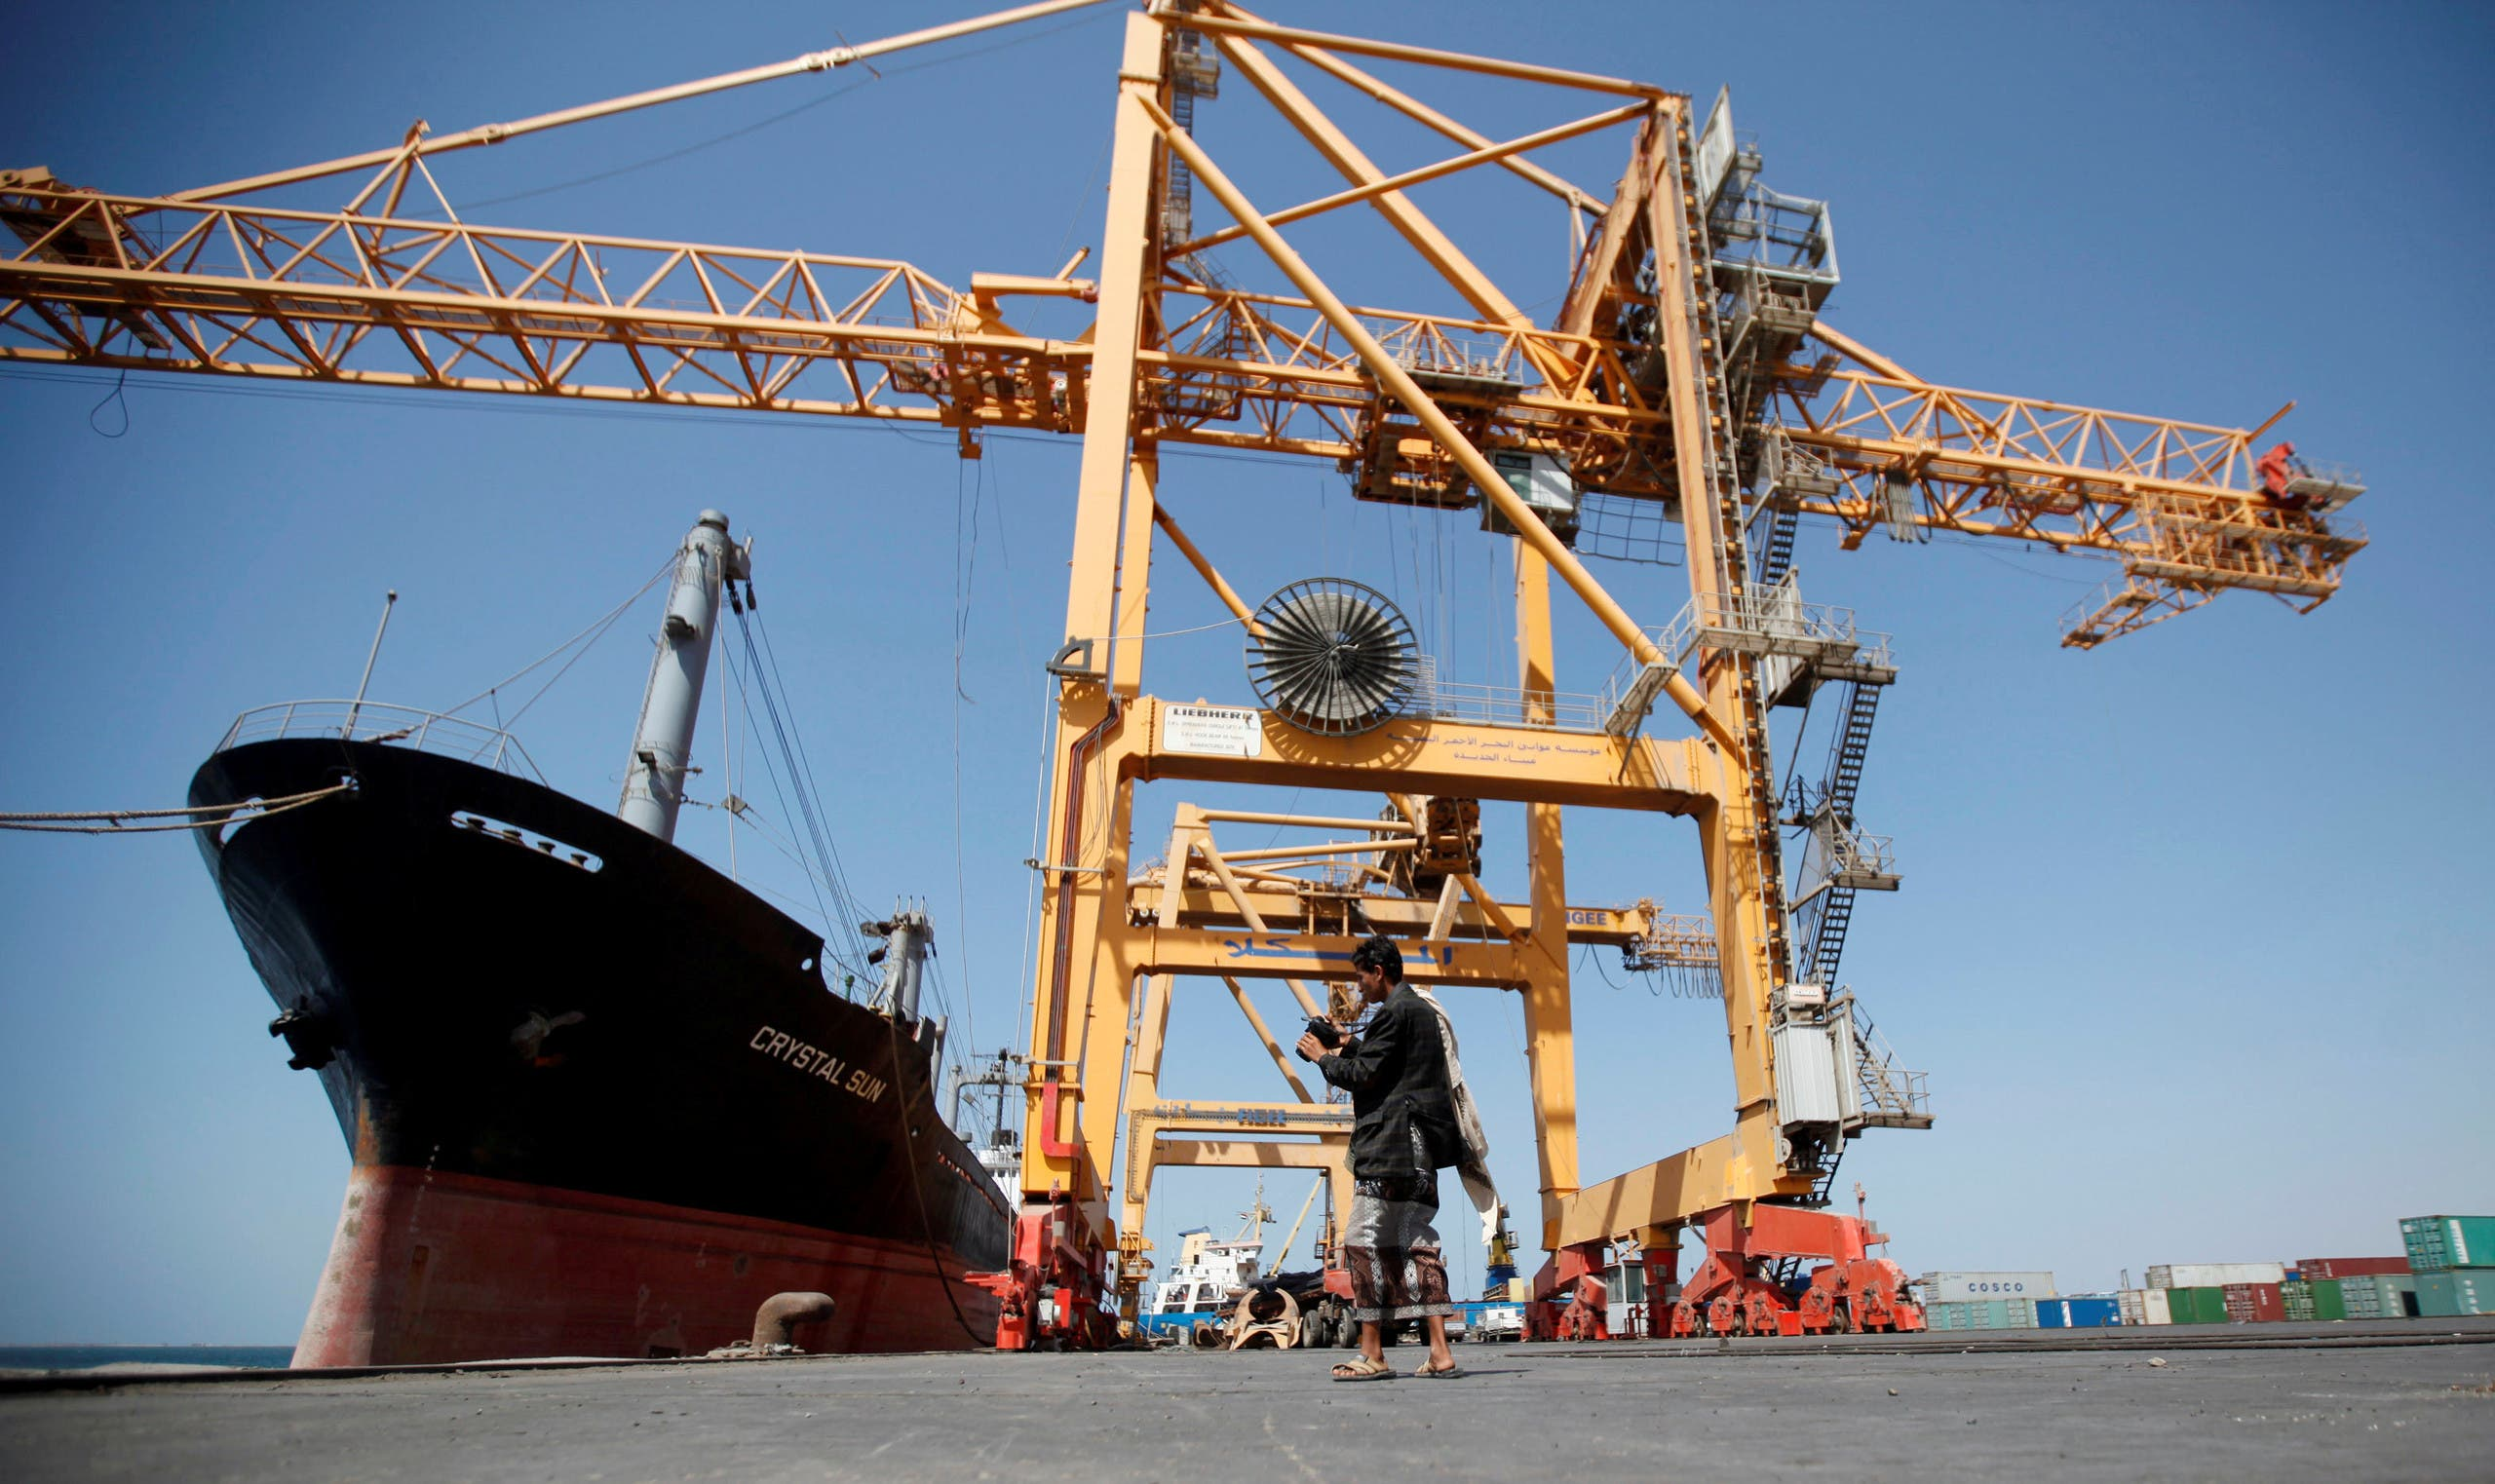 A Houthi militia media officer checks a camera next to giant cranes, damaged by Saudi-led air strikes, at a container terminal at the Red Sea port of Hodeidah, Yemen November 16, 2016